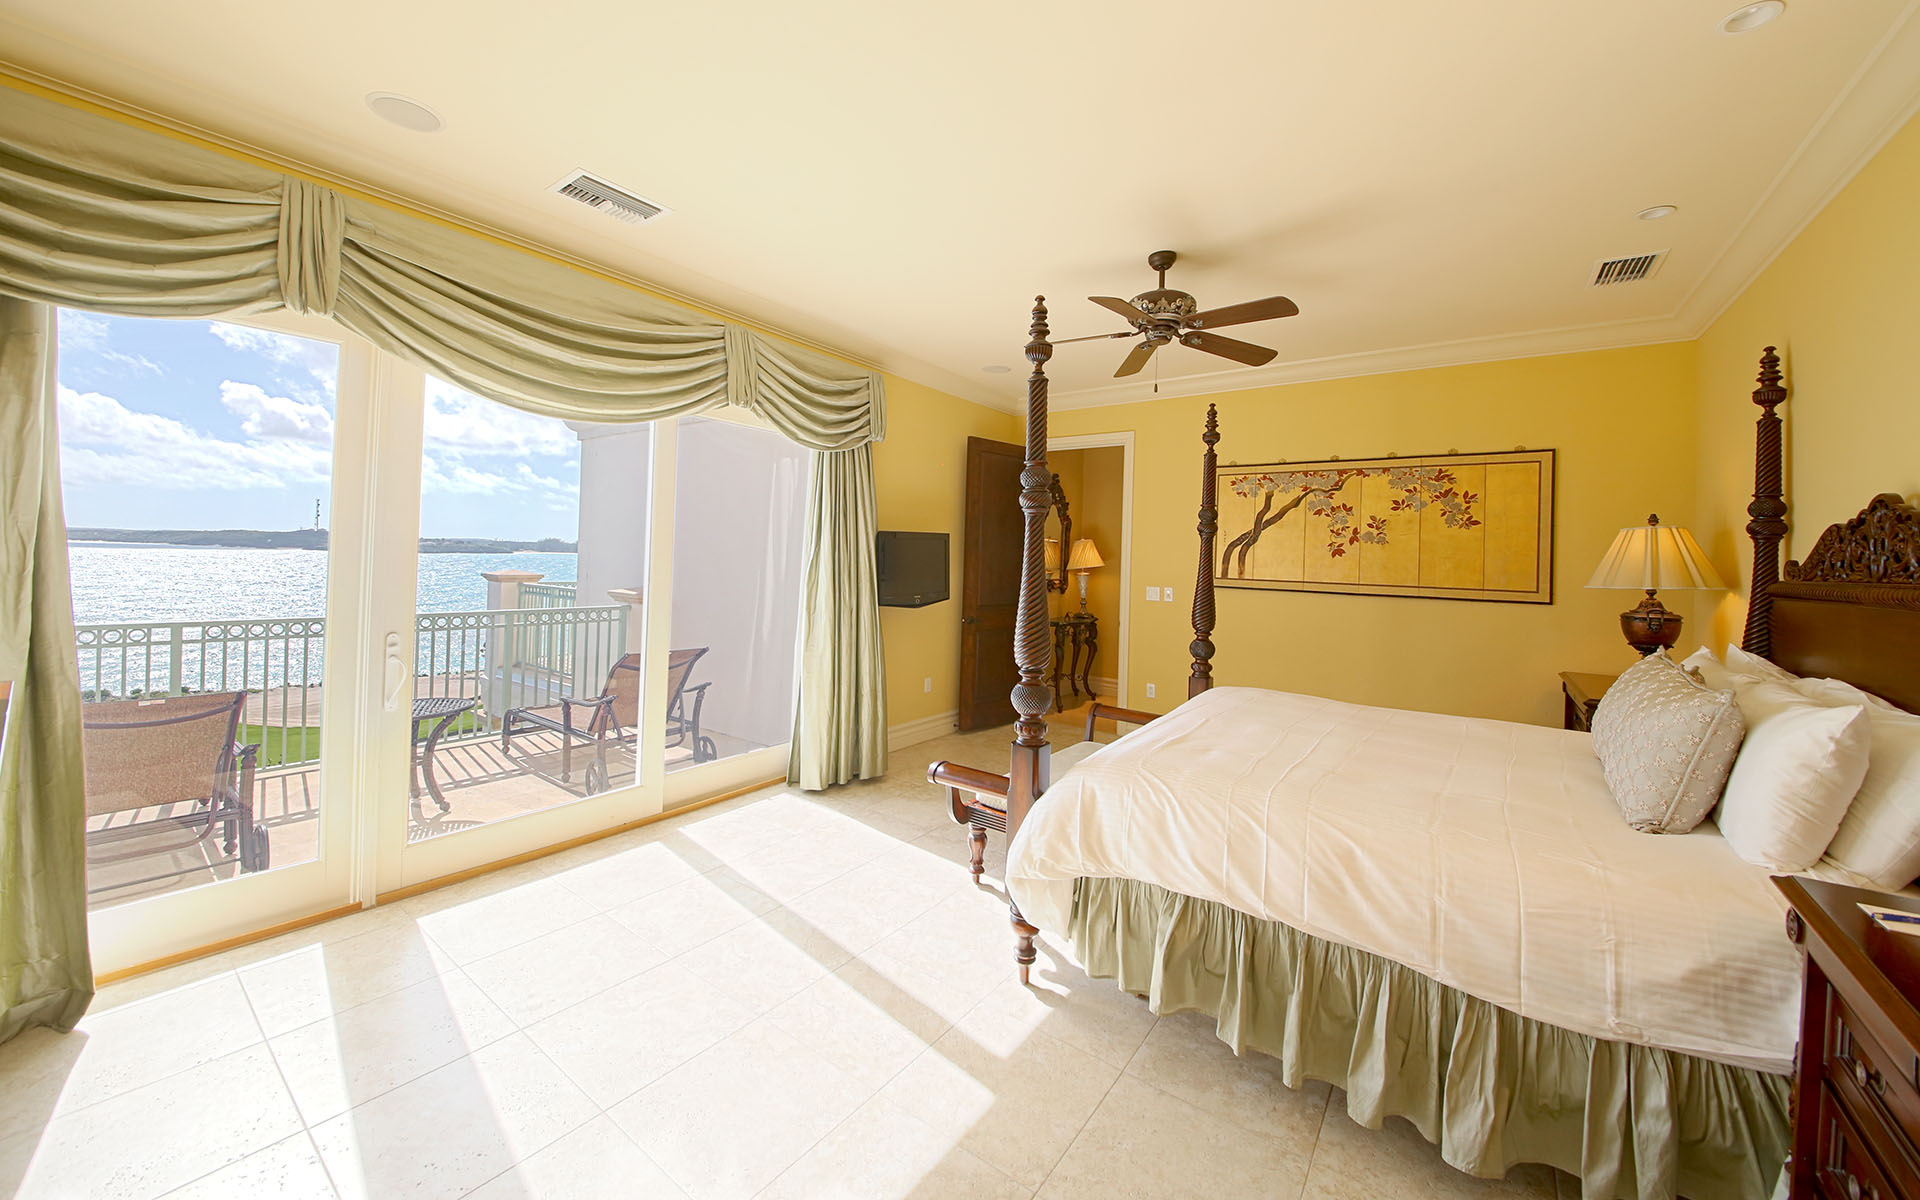 Additional photo for property listing at Grand Isle Villas Resort Penthouse - MLS 29556 Emerald Bay, Exuma, Bahamas